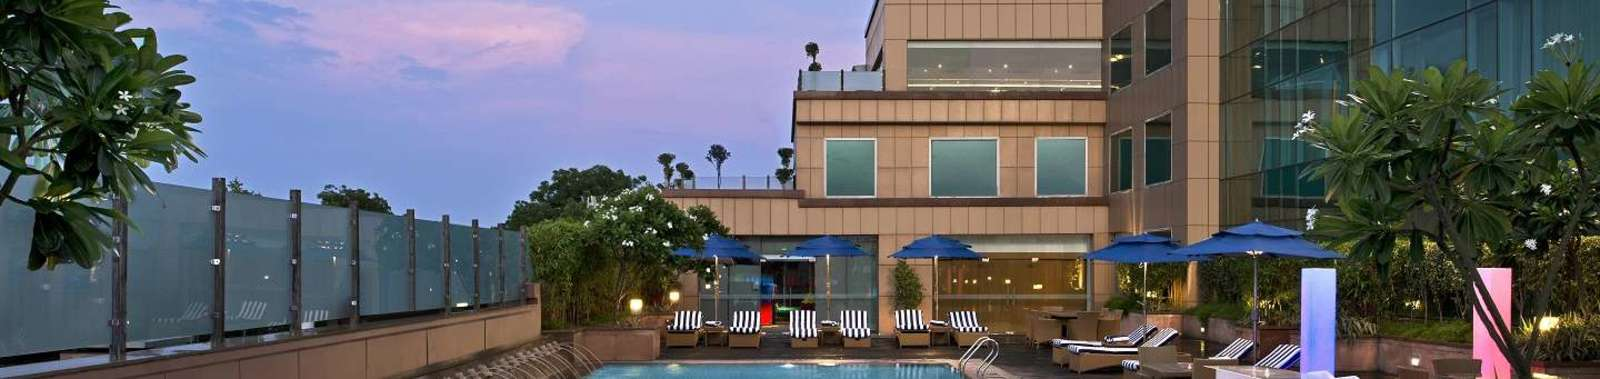 In Agra stay at the Radisson Blue Agra Taj East Gate, a modern hotel convenient for the Taj Mahal